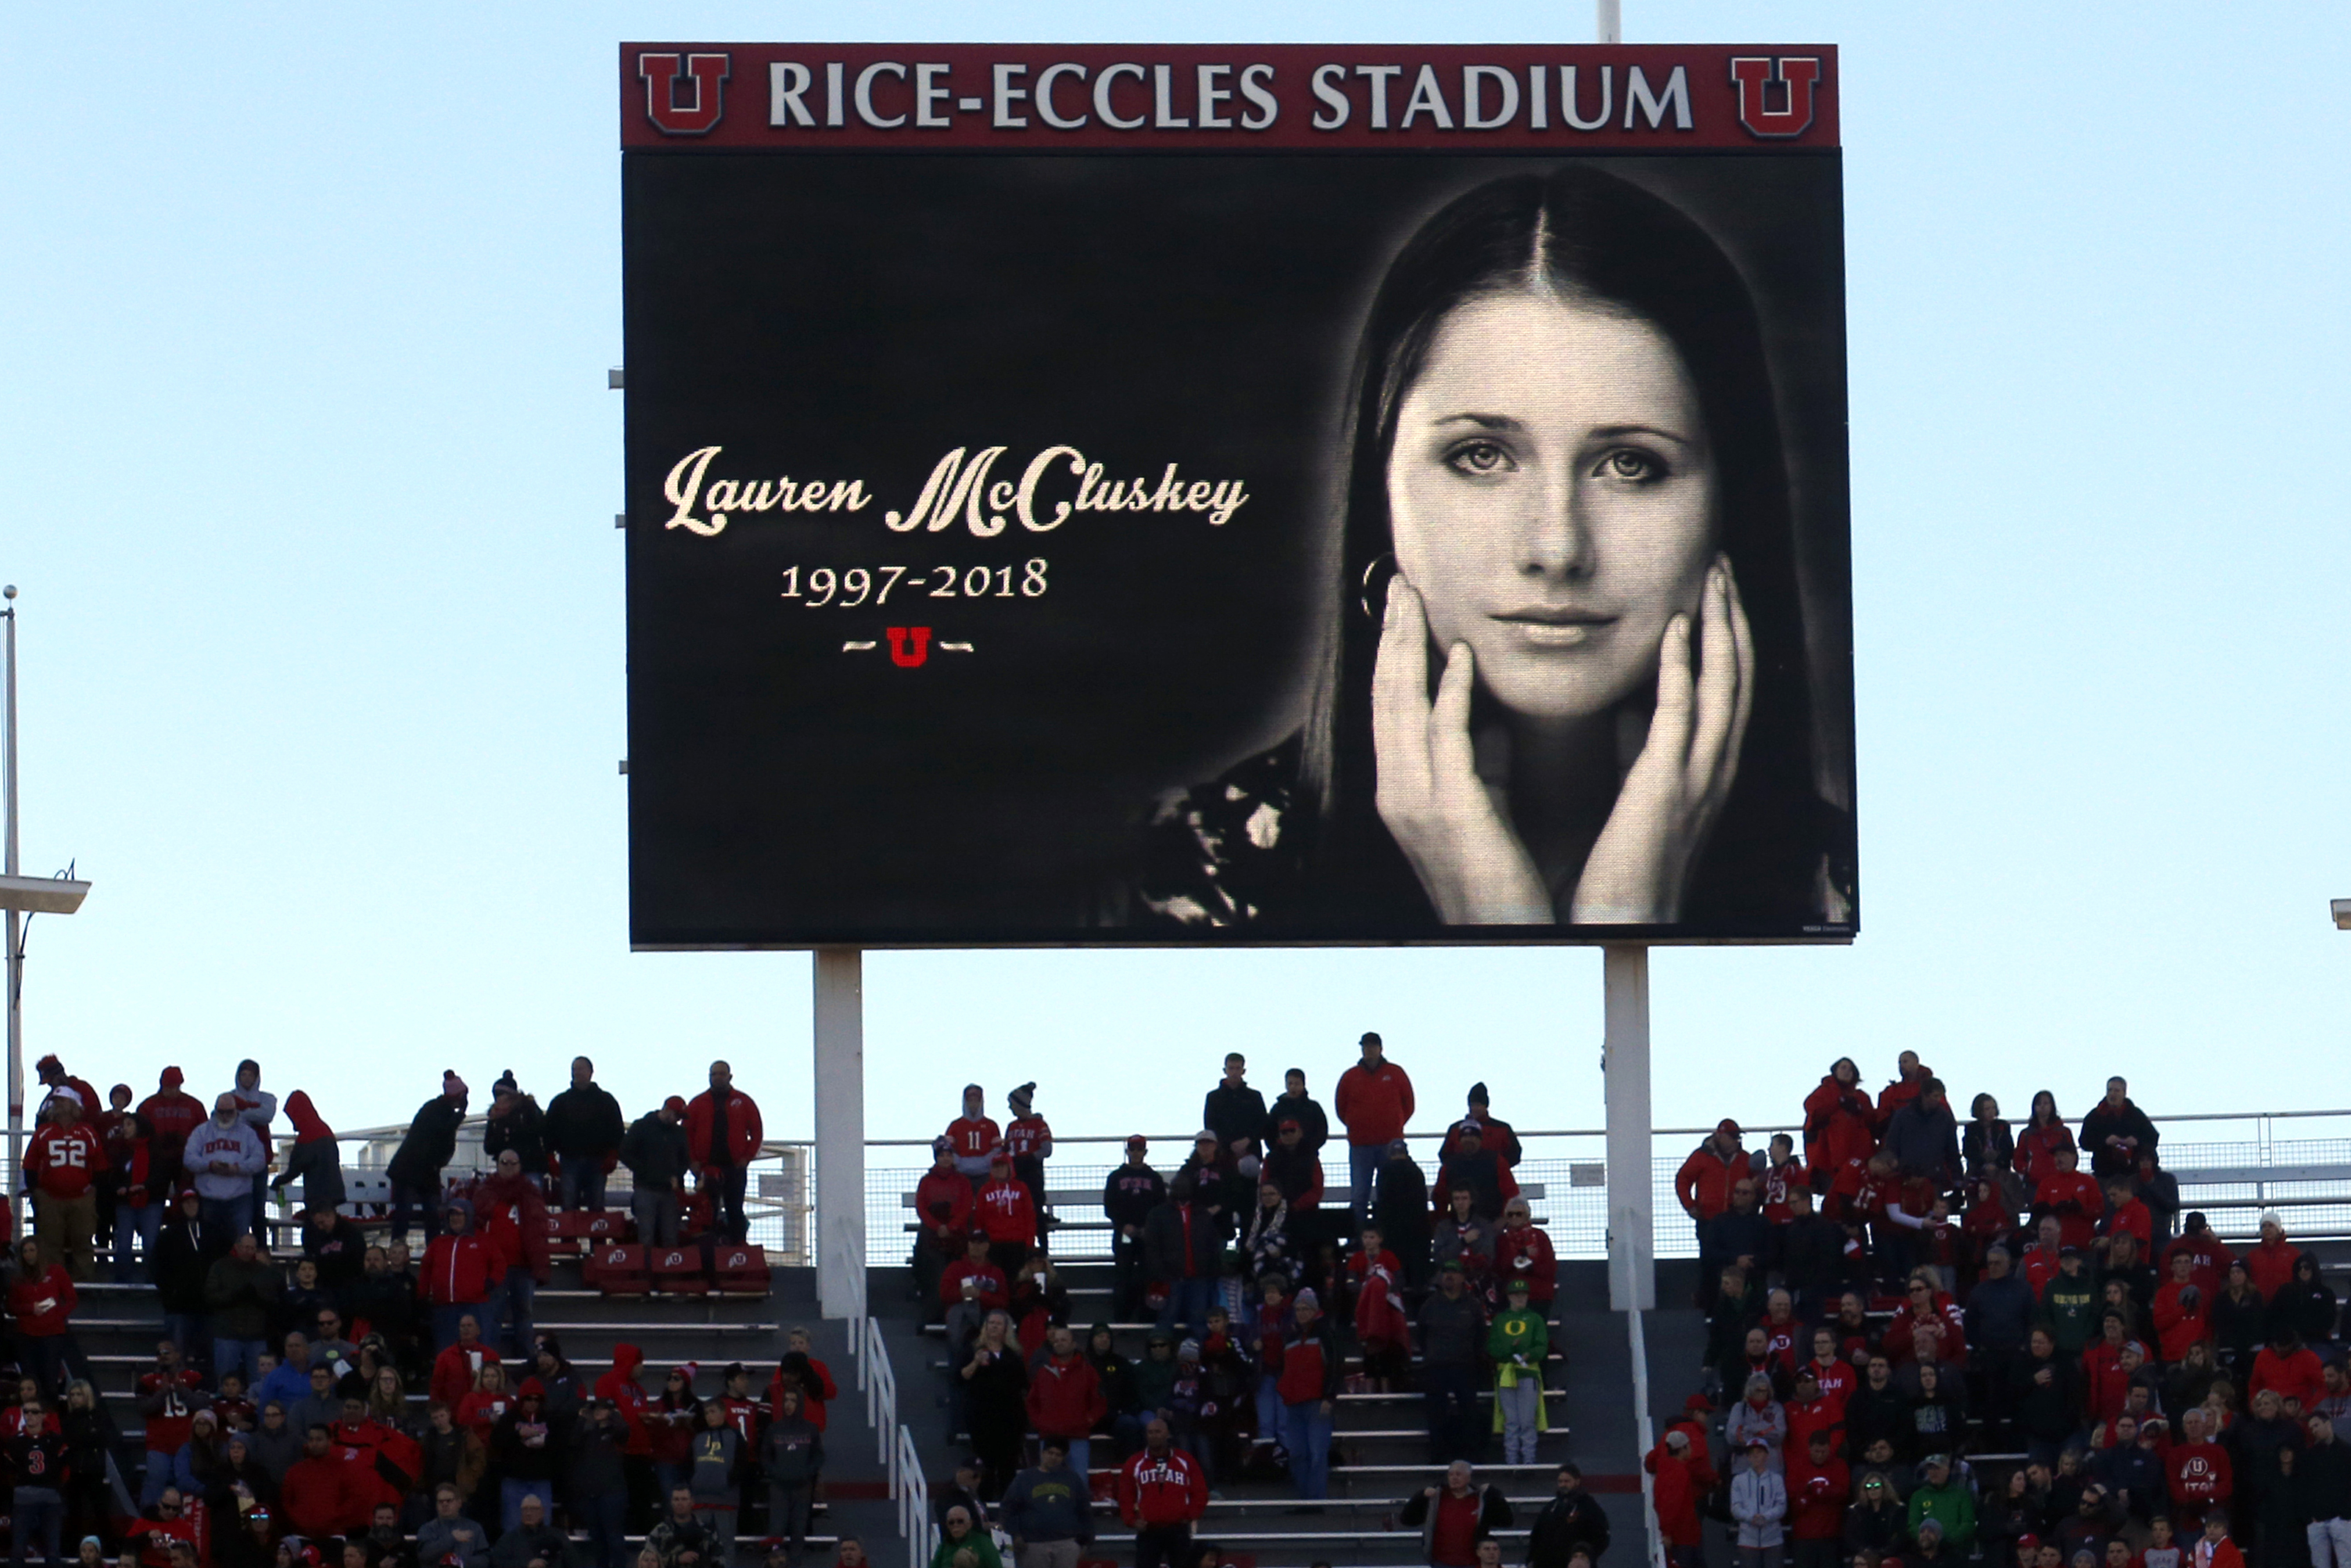 A photograph of University of Utah student and track athlete Lauren McCluskey, who was fatally shot on campus, is projected on the video board before the start of an NCAA college football game between Oregon and Utah in Salt Lake City, on Nov. 10, 2018.